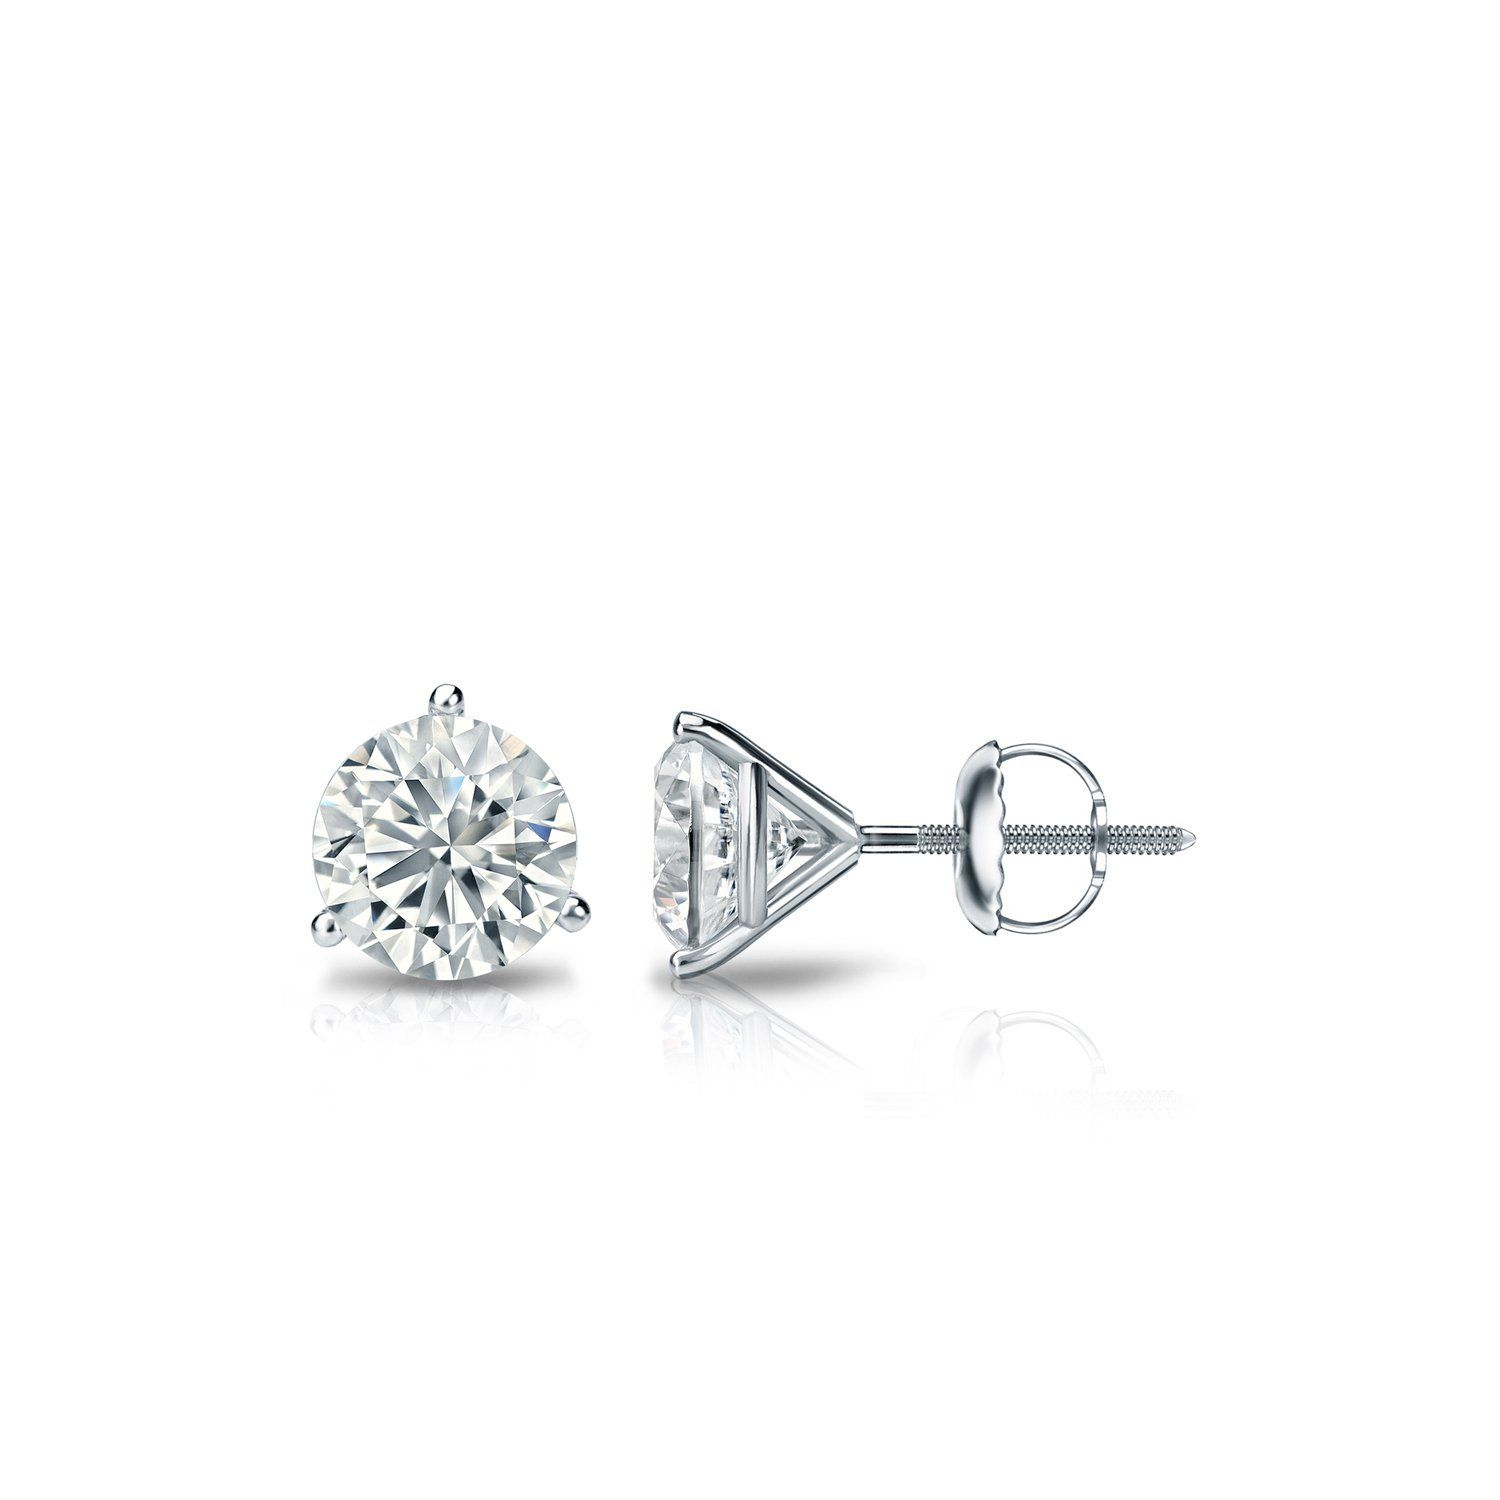 stud gold carat diamond three ctw white prong earrings in